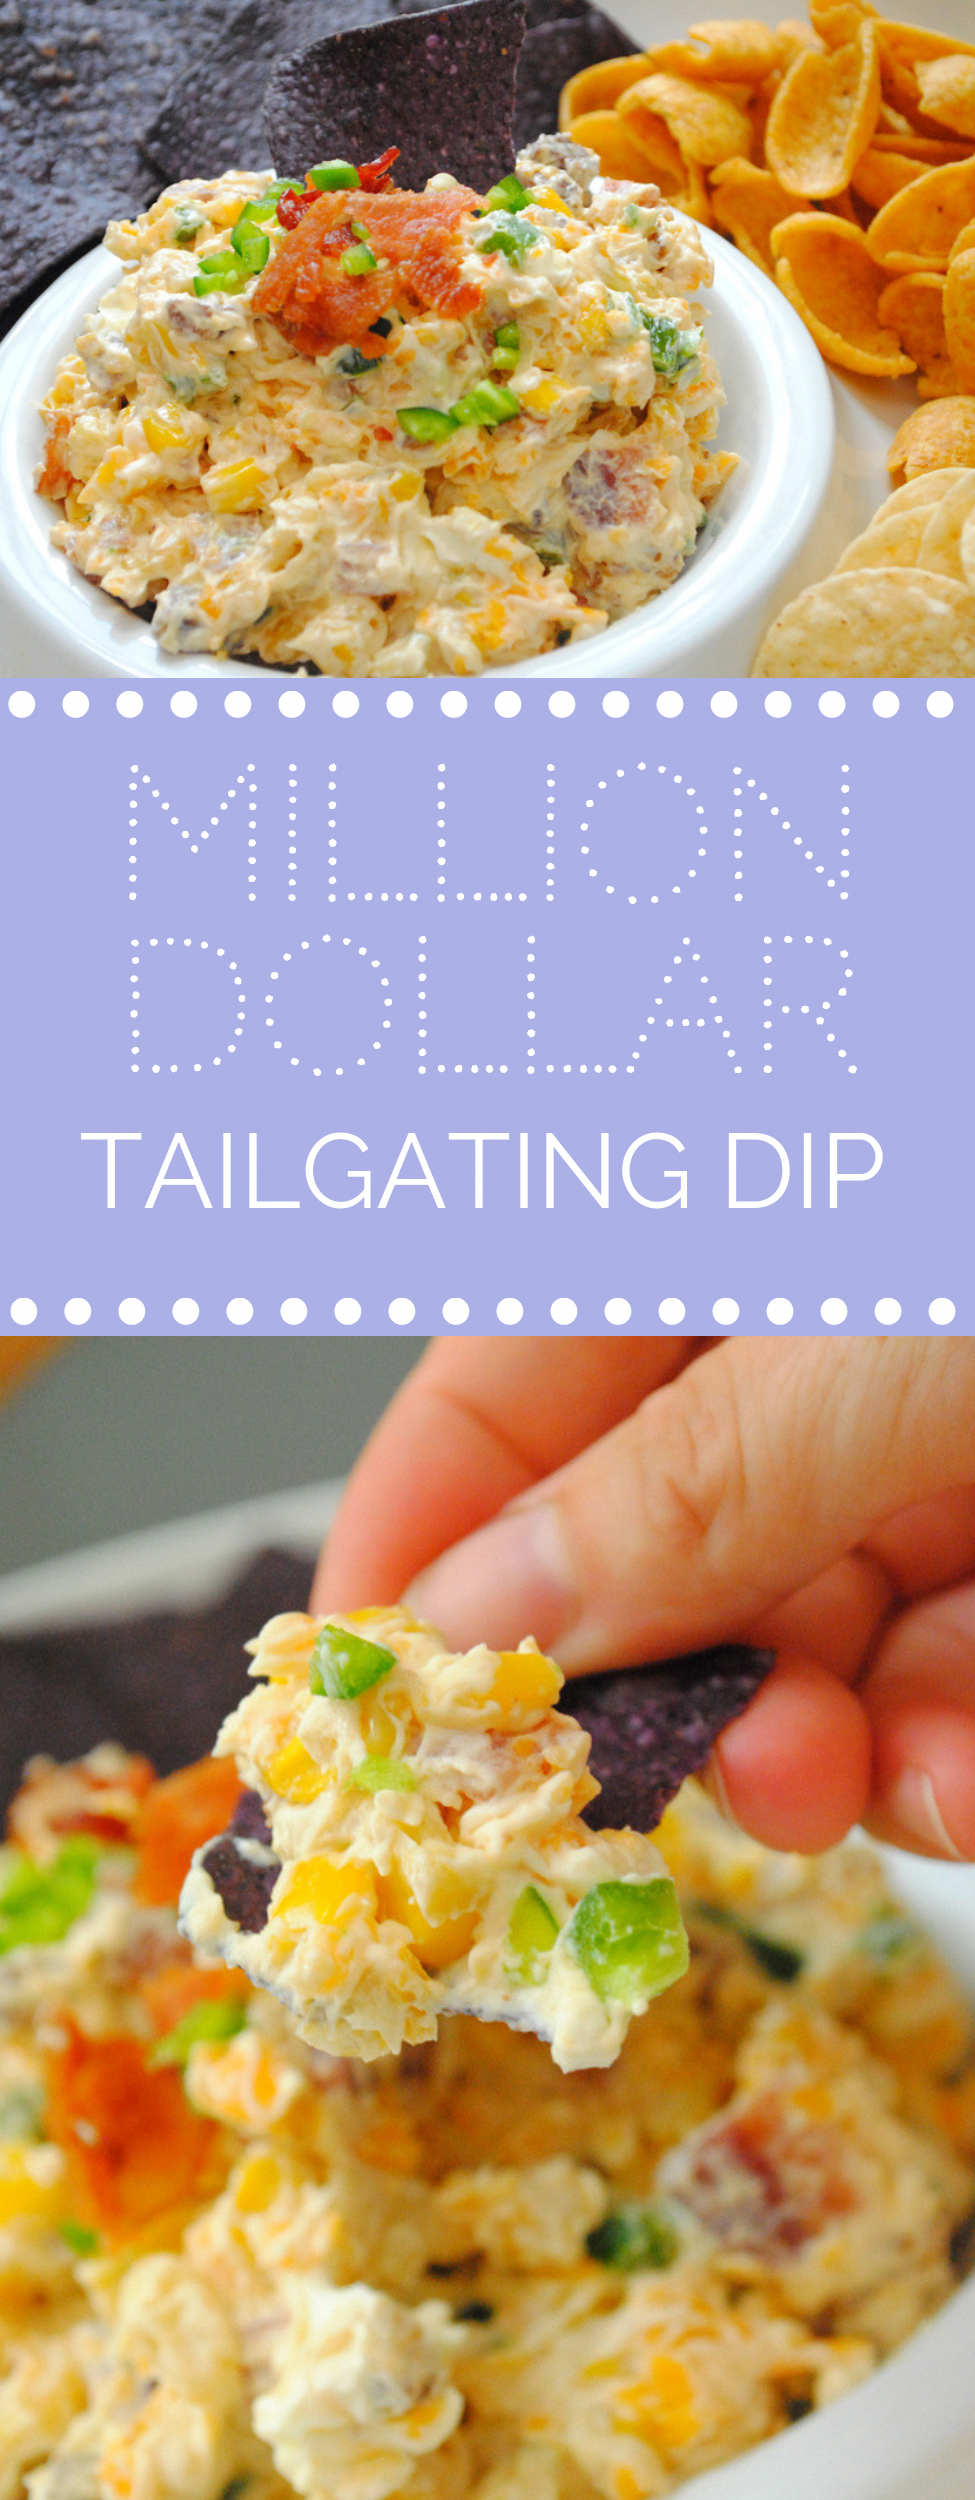 Million Dollar Tailgating Dip - The Anchored Kitchen #gameday #tailgating #dip #appetizer #sundayfootball #cheesedip #bacon #foodappetizers #milliondollardip